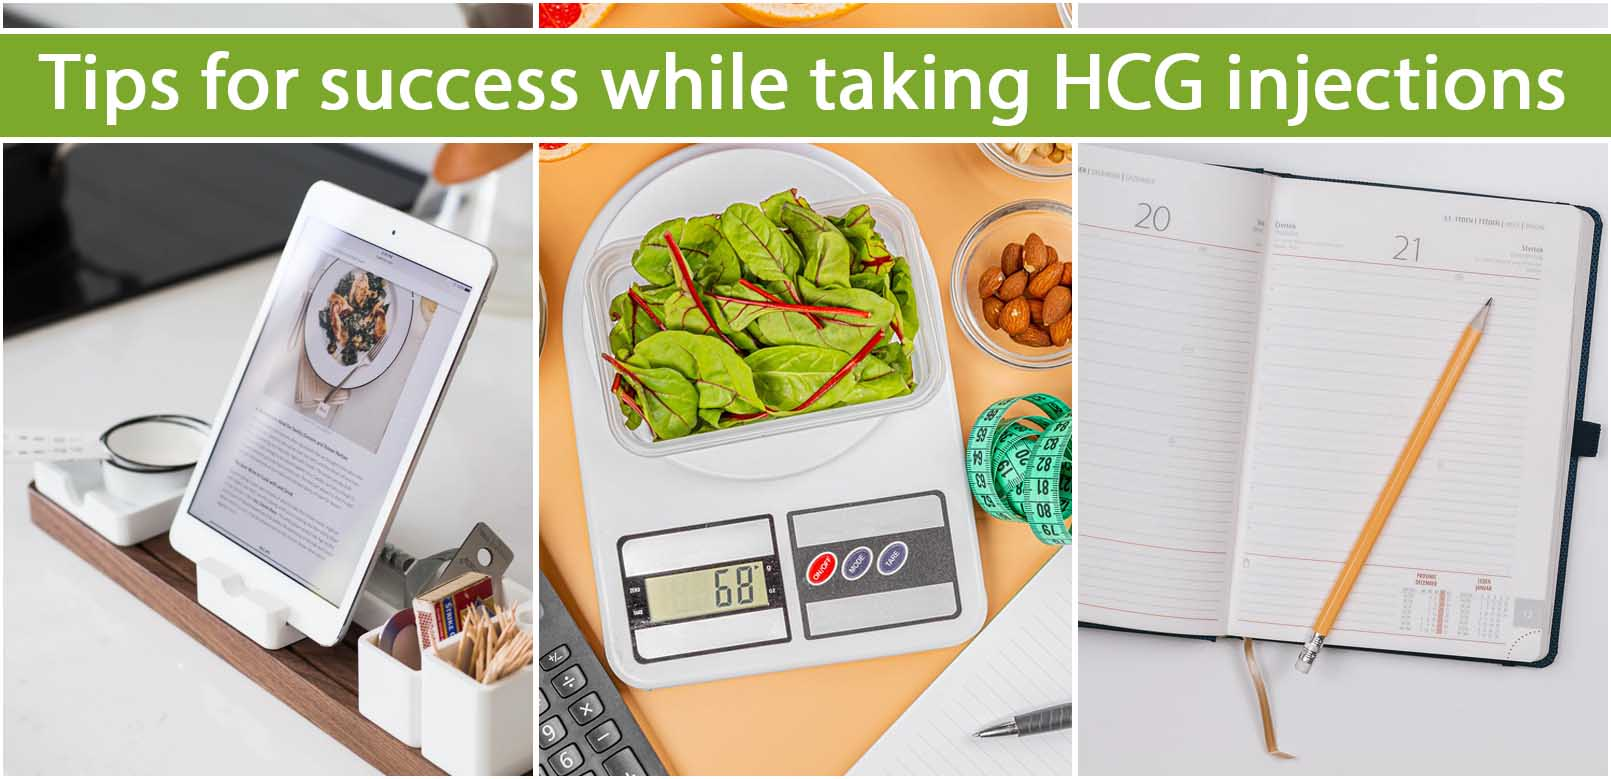 Tips for success while taking HCG injections